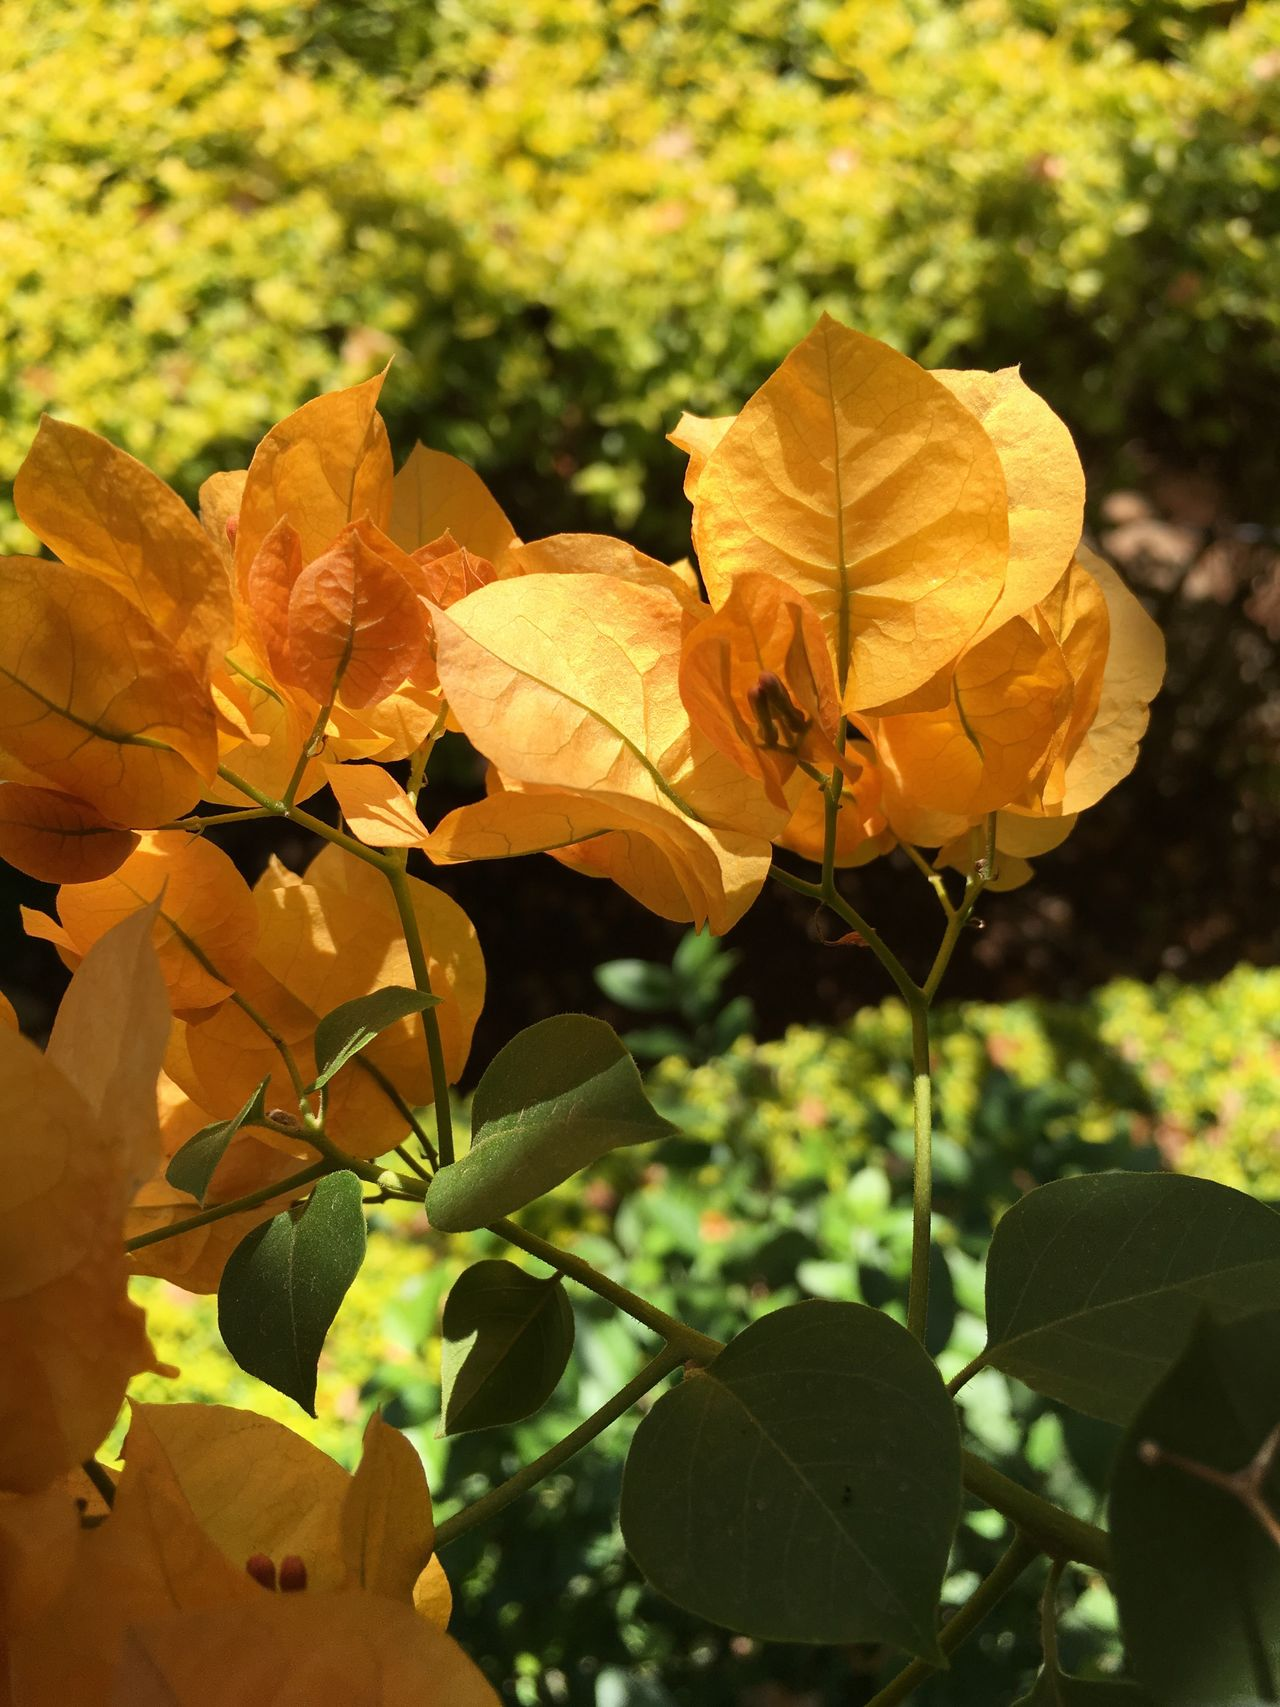 IPhone IPhoneography Bougainvillea Unedited Leaf Nature Yellow Beauty In Nature Tree Orange Color Close-up Outdoors Focus On Foreground No People Autumn Growth Change Day Fragility Freshness Flower Head